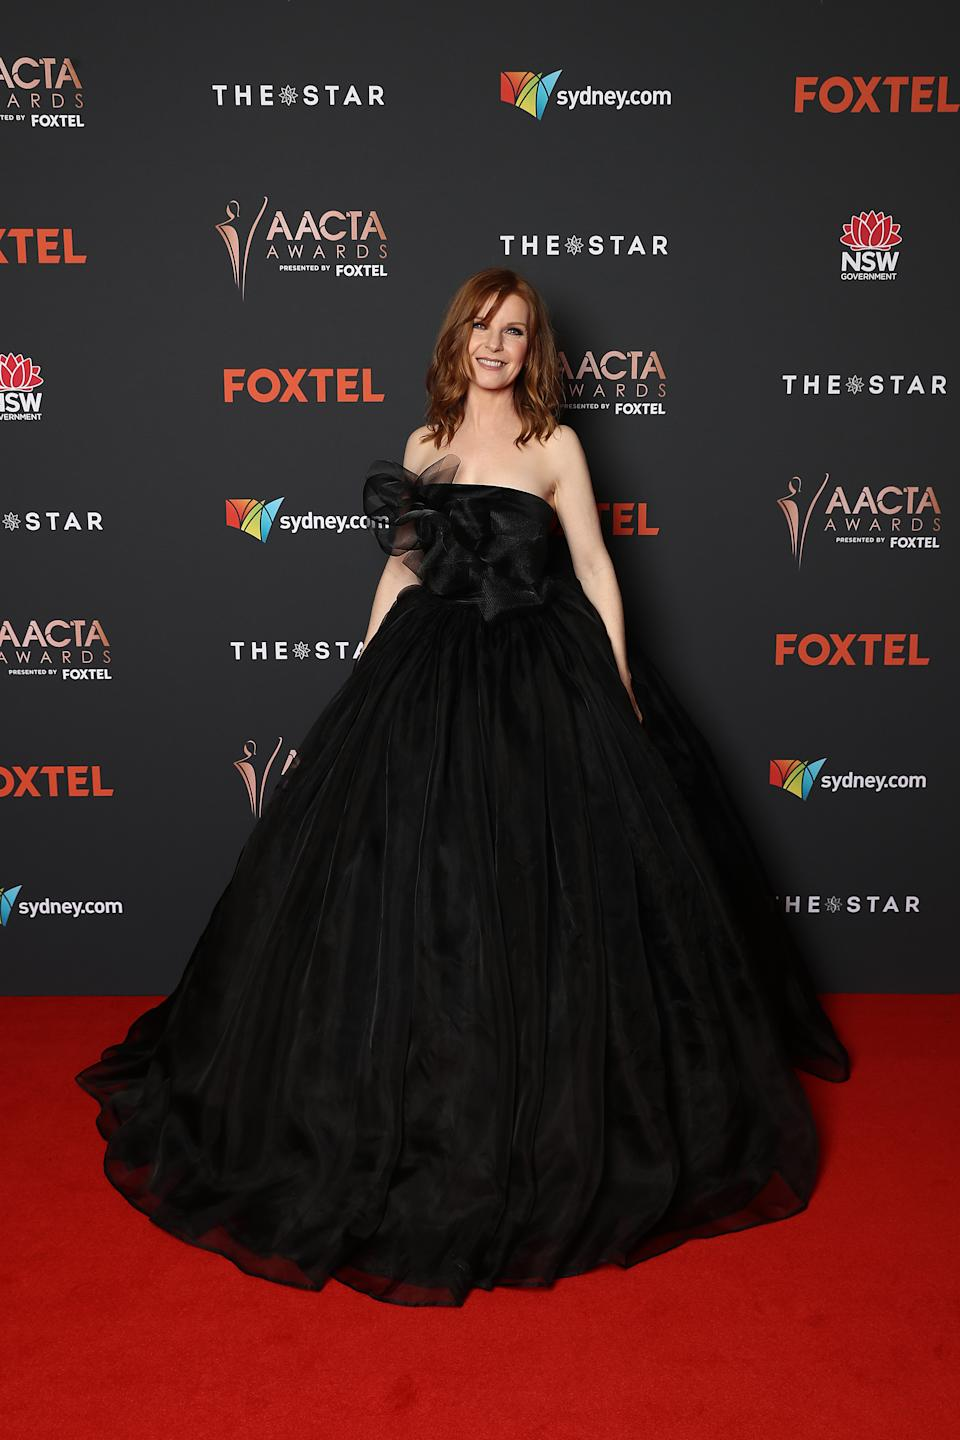 Jacqueline McKenzie arrives ahead of the 2020 AACTA Awards presented by Foxtel at The Star on November 30, 2020 in Sydney, Australia.